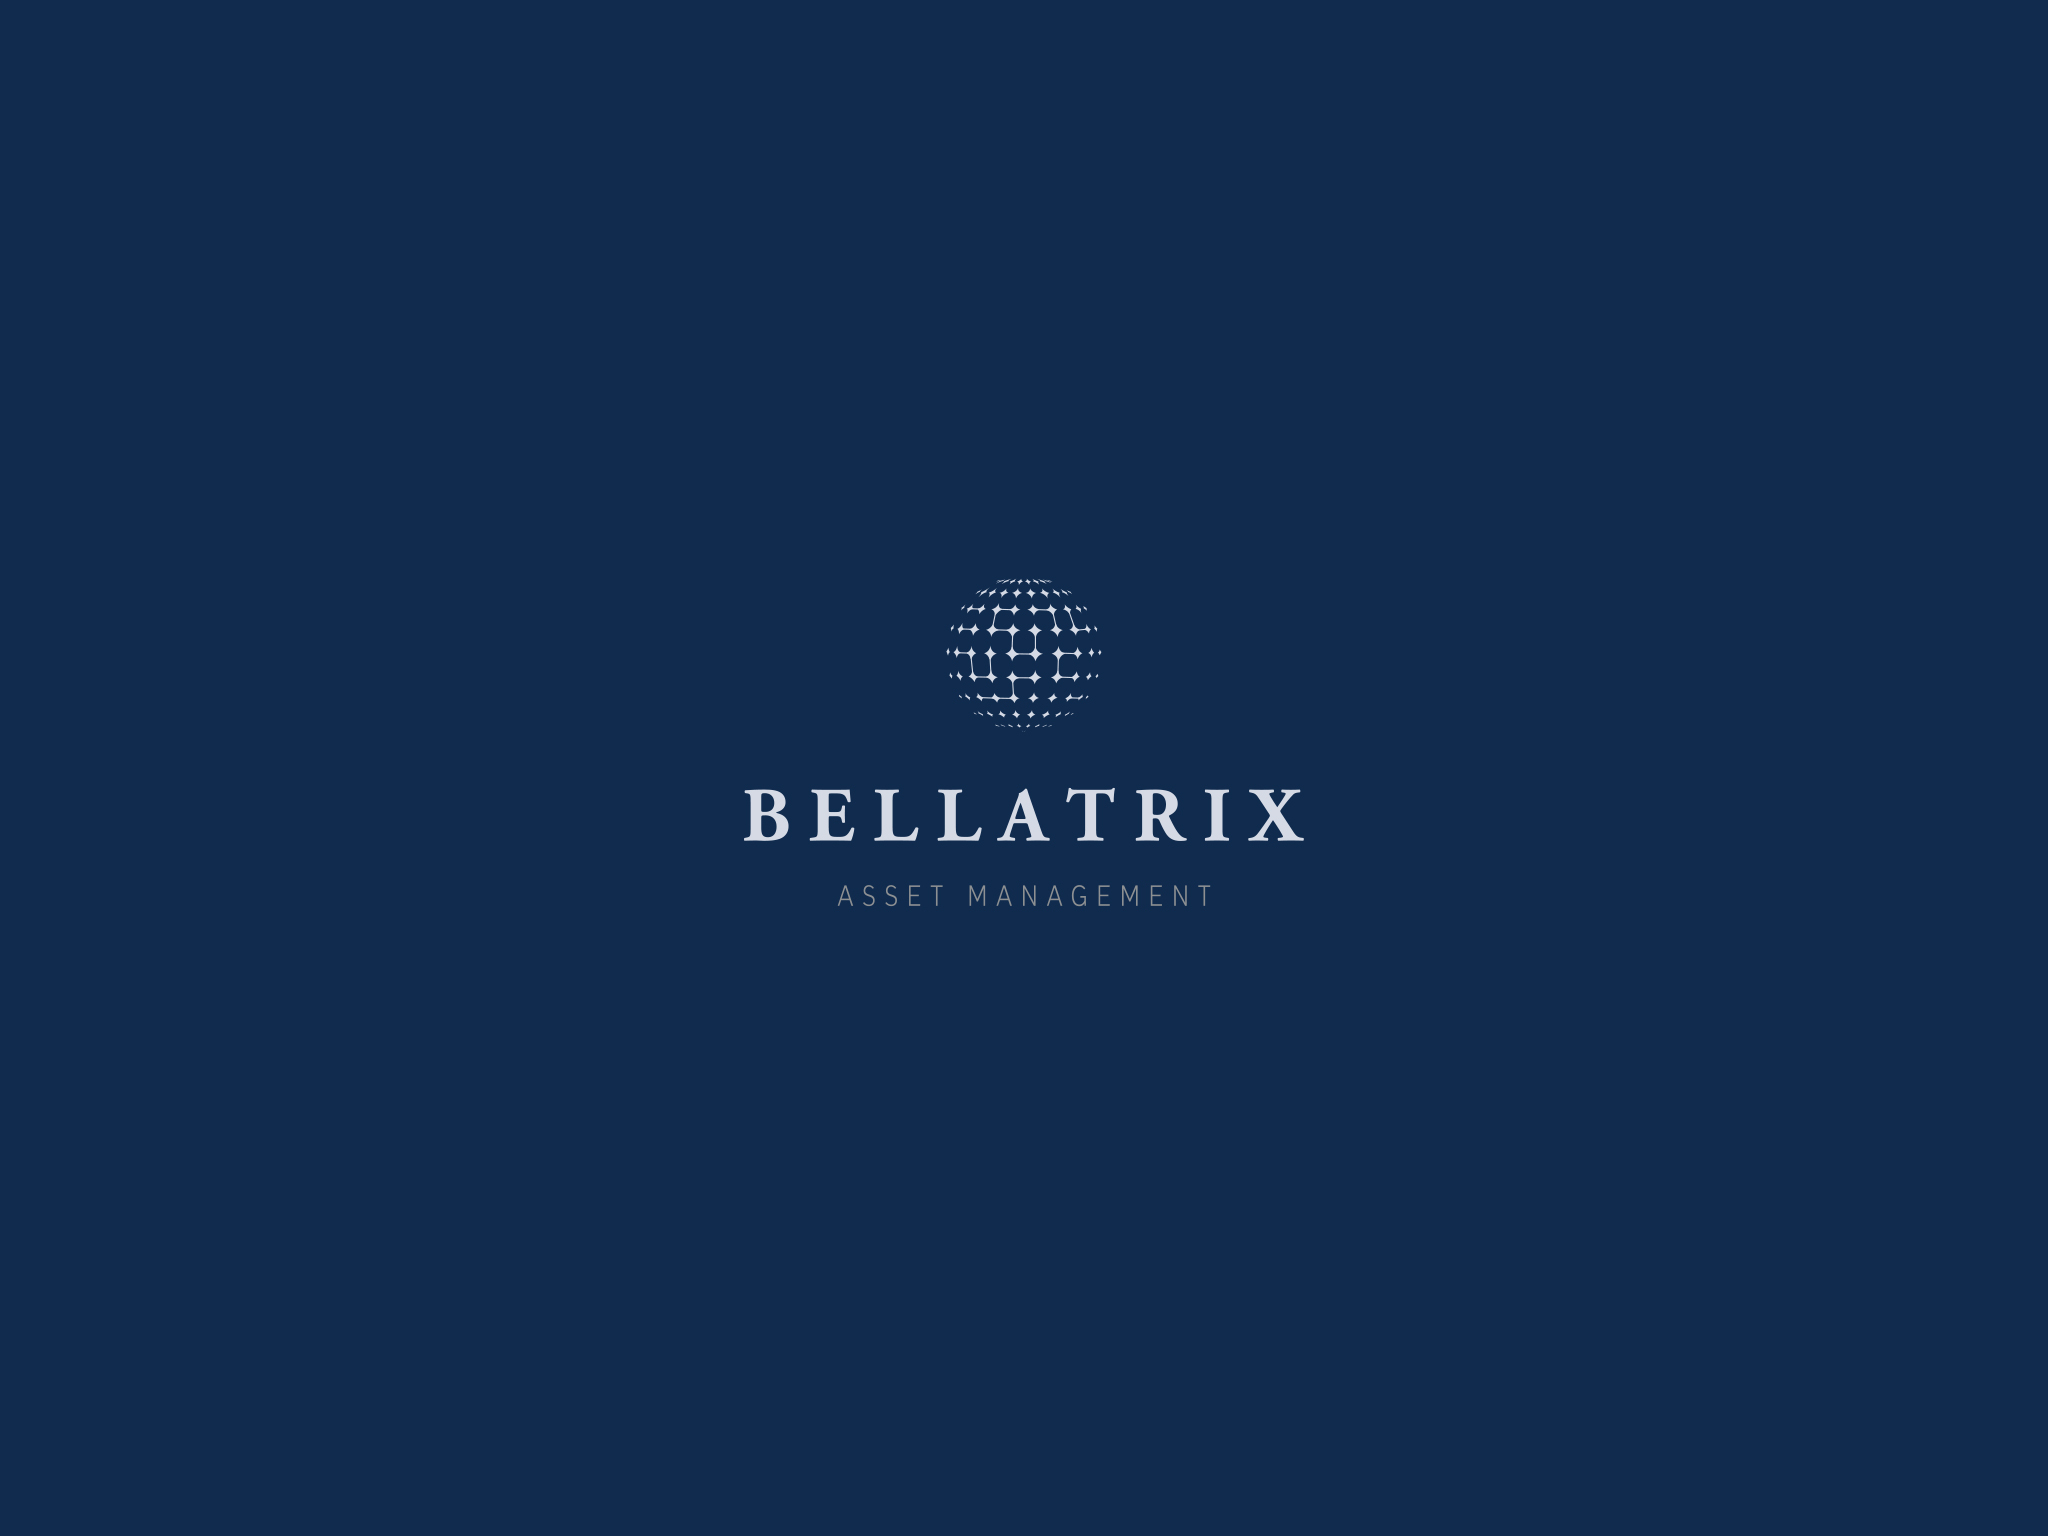 Bellatrix Asset Management logo